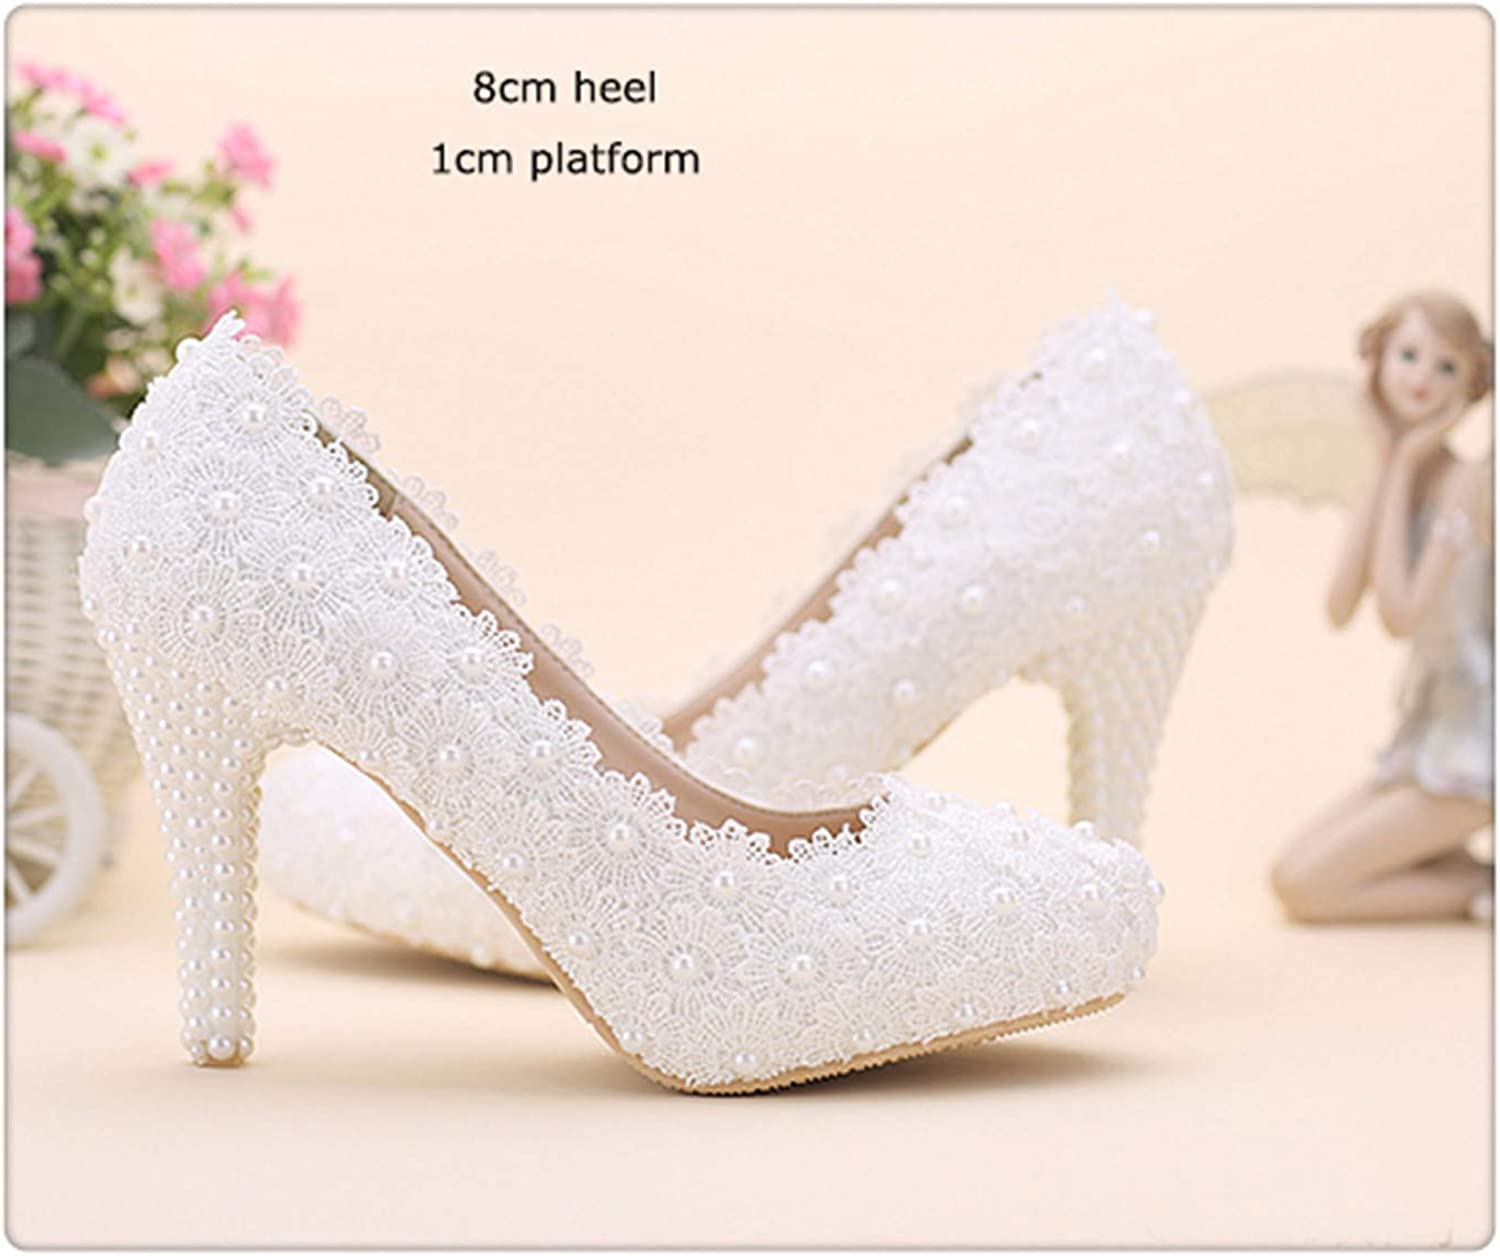 HCHBE& Women Fashion Sweet White red Flower Lace Platform High Heels Pearls Rhinestone Wedding shoes Bride Dress shoes White 8cm Heel 9.5